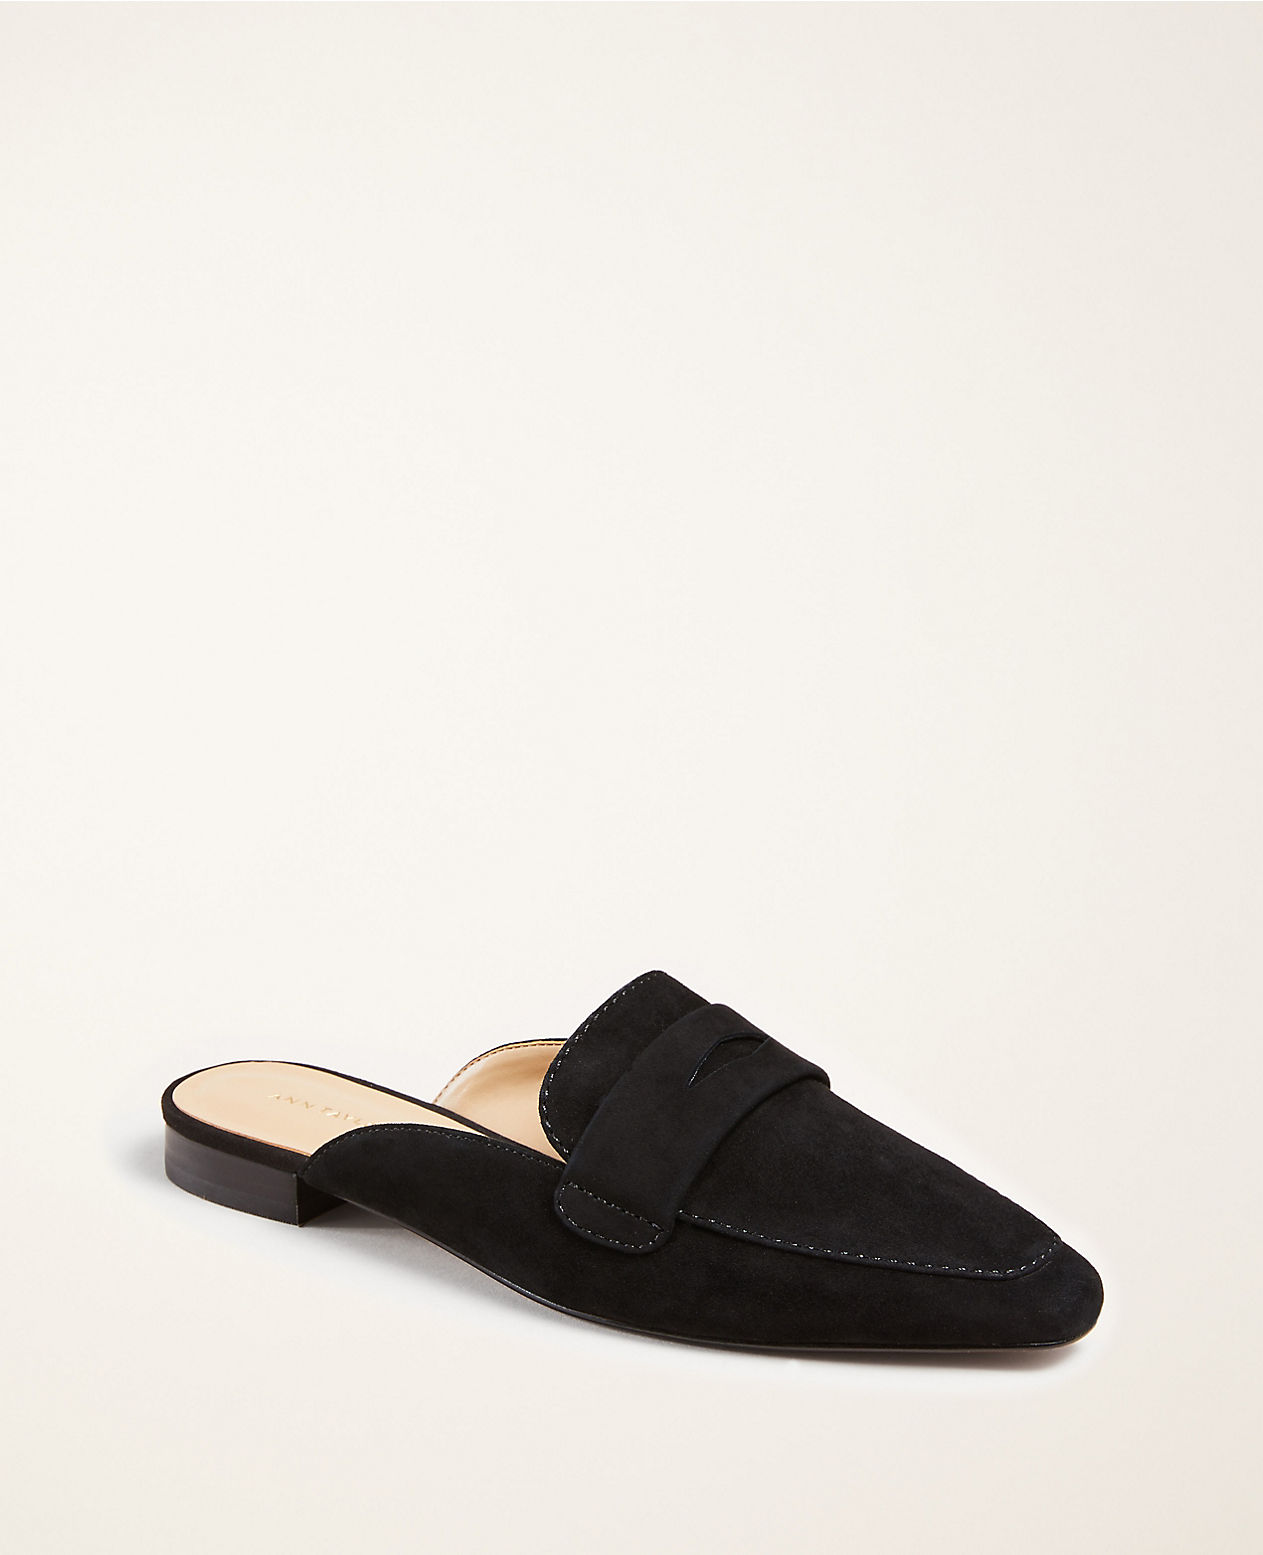 Suede Loafer Slides